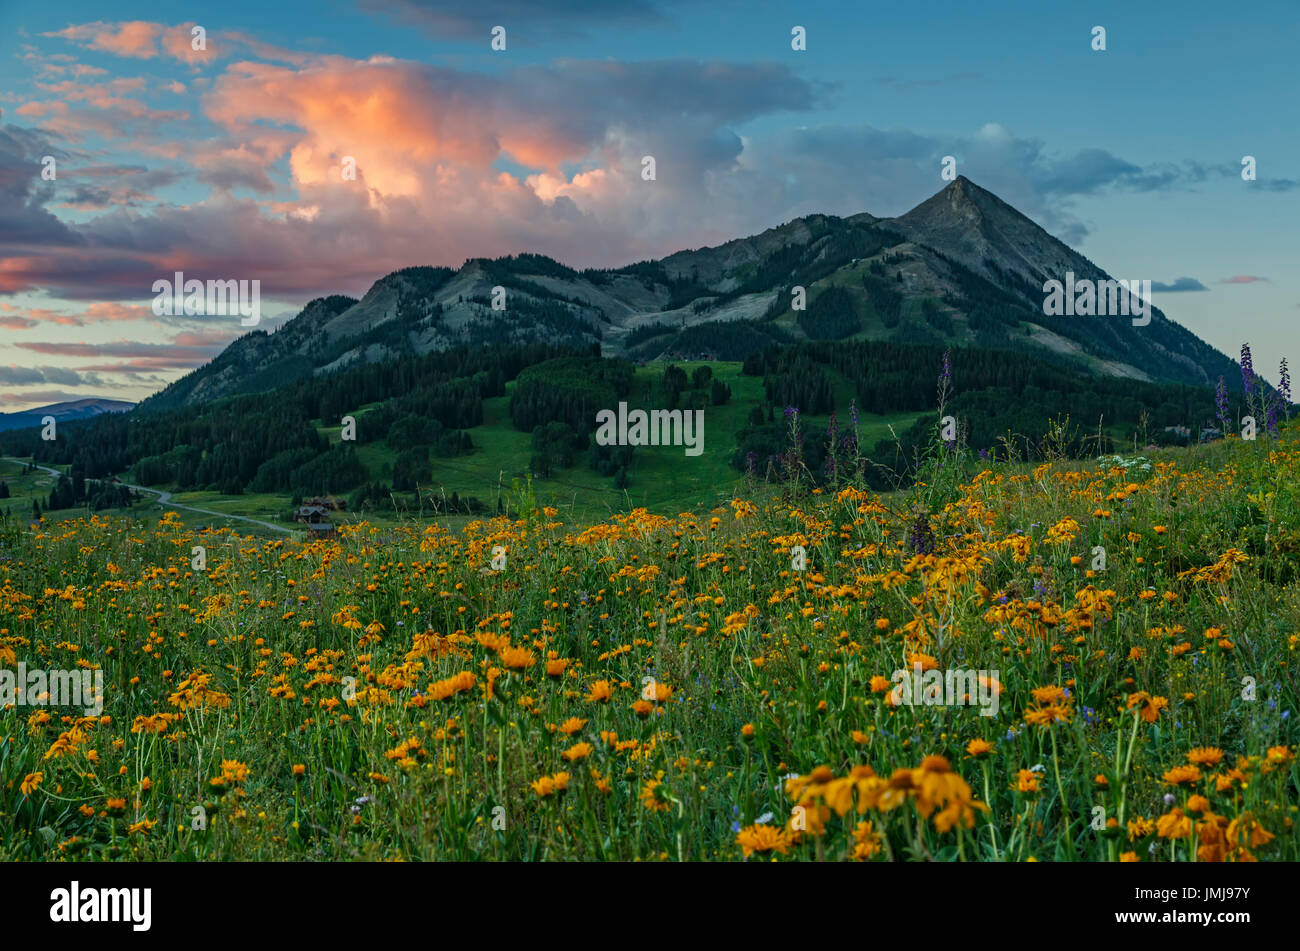 Wildflowers and Mount Crested Butte (12,162 ft.), Gunnison National Forest, near Crested Butte, Colorado USA - Stock Image